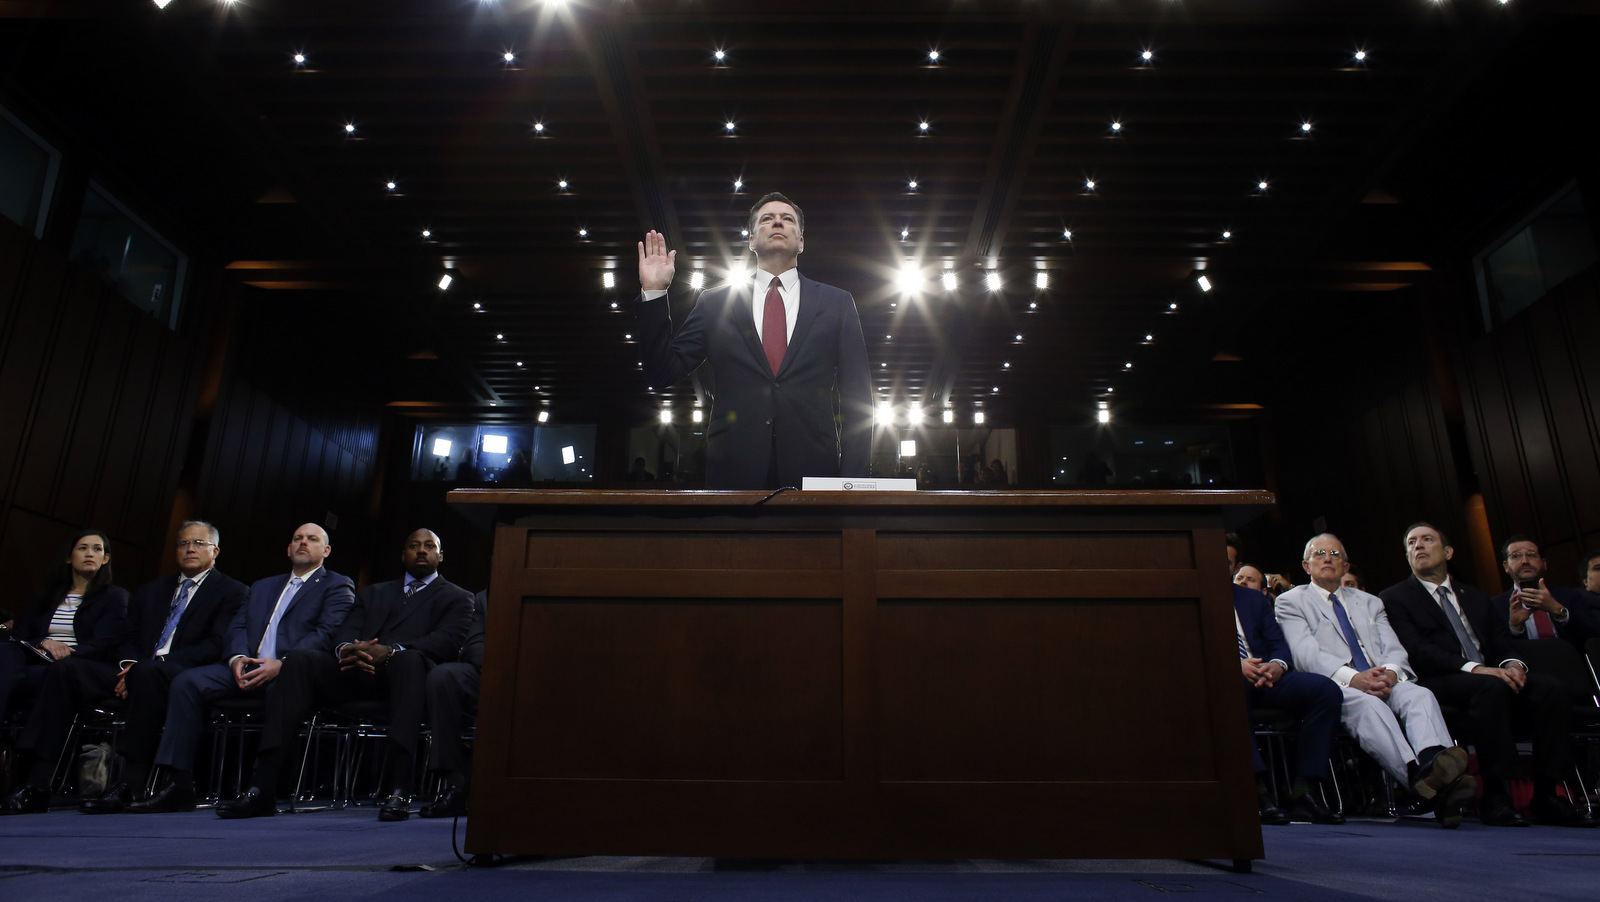 Former FBI Director James Comey is sworn in during a Senate Intelligence Committee hearing on Capitol Hill, Thursday, June 8, 2017, in Washington. (AP/Alex Brandon)